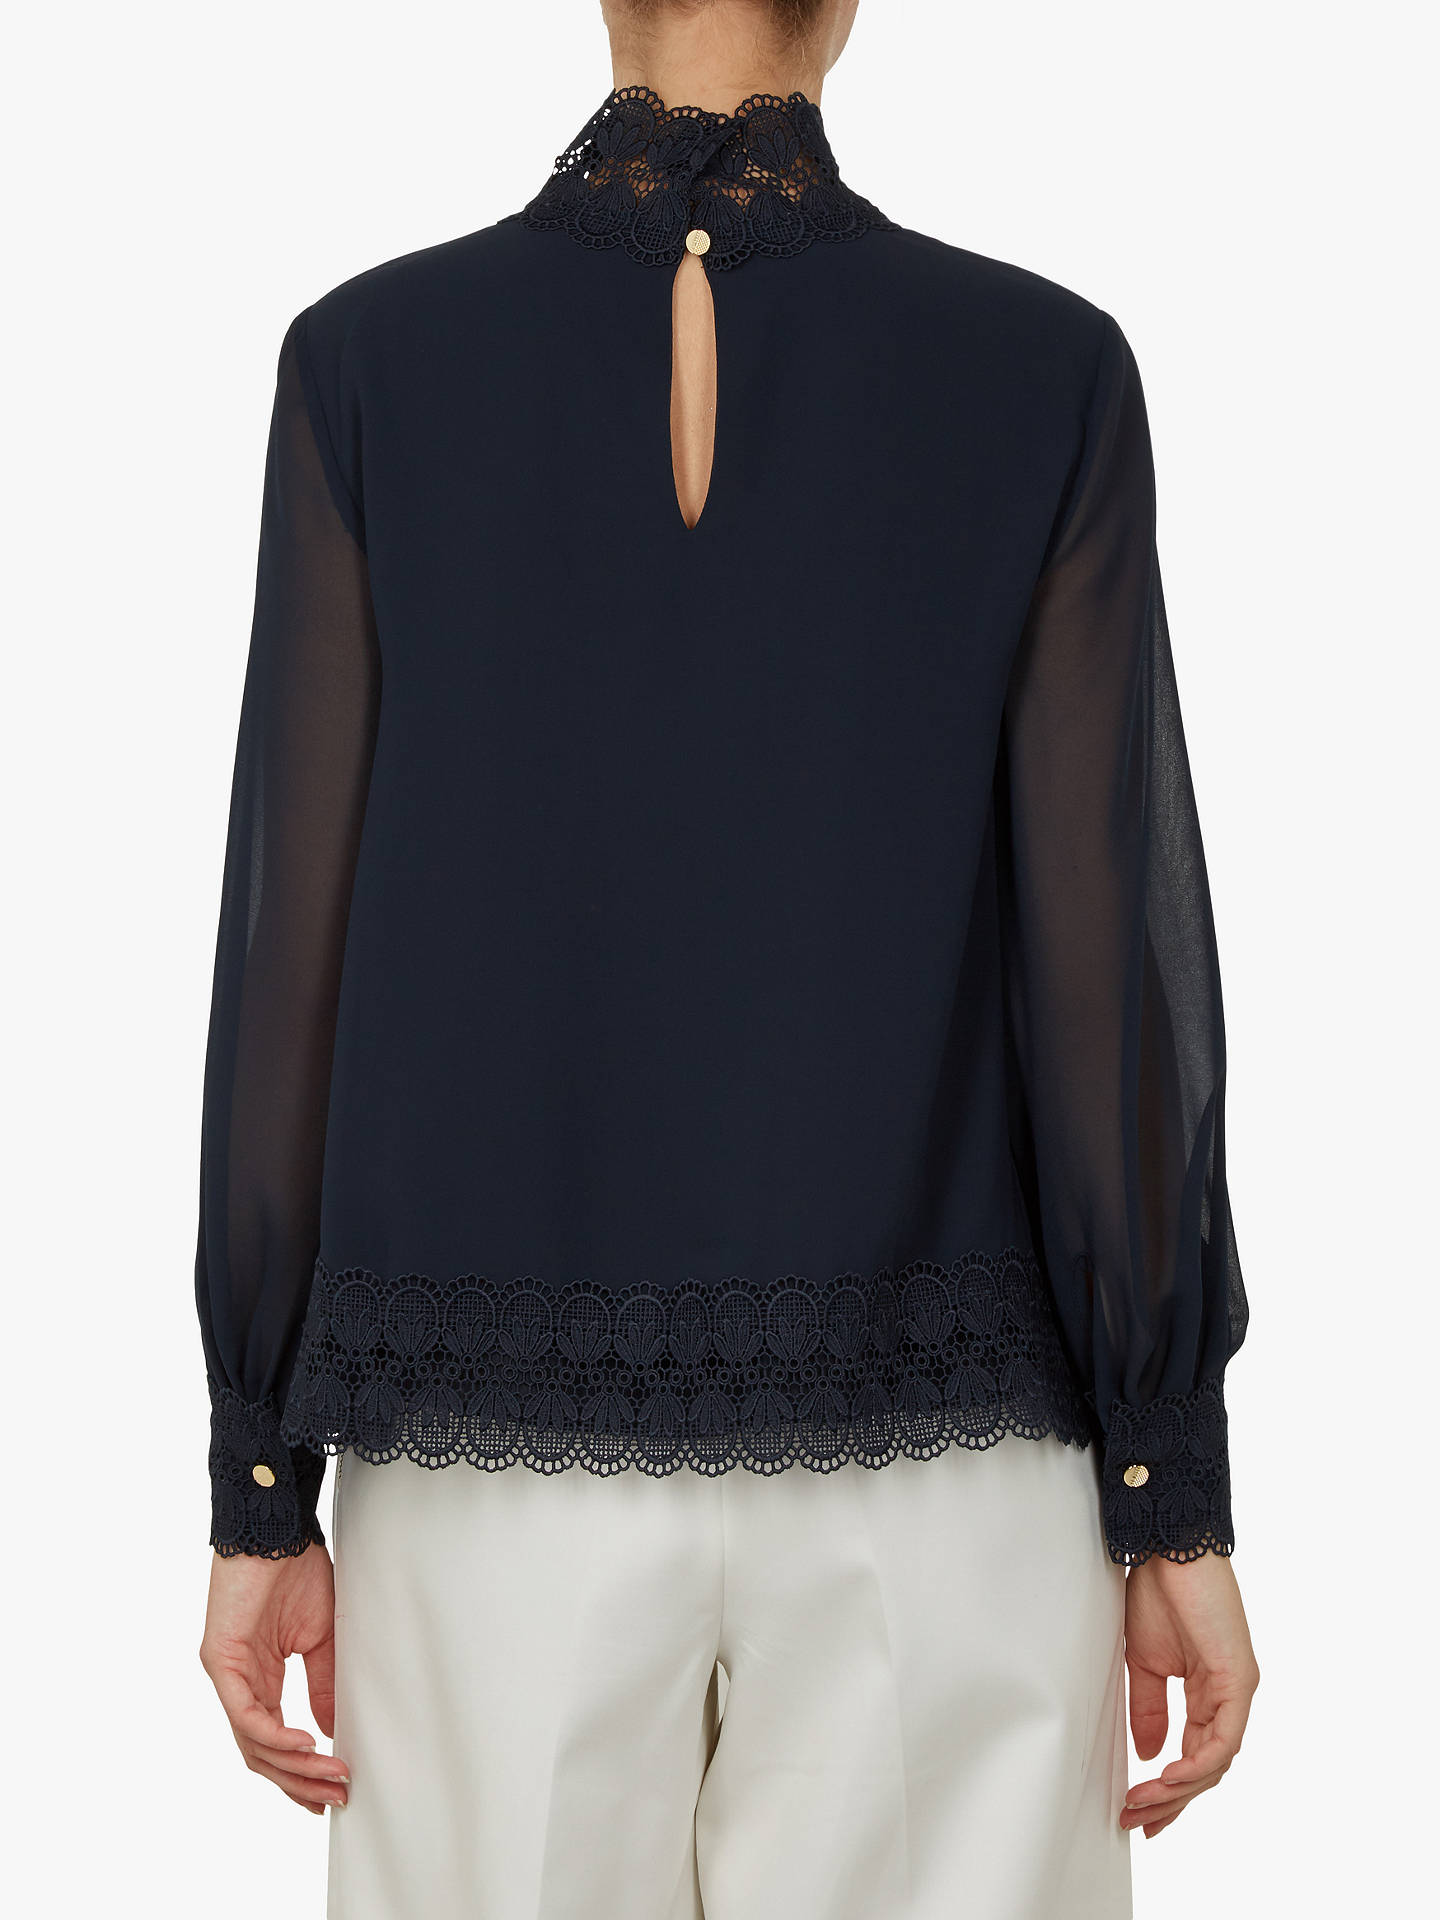 BuyTed Baker Cailley Neck Top, Blue Navy, 0 Online at johnlewis.com